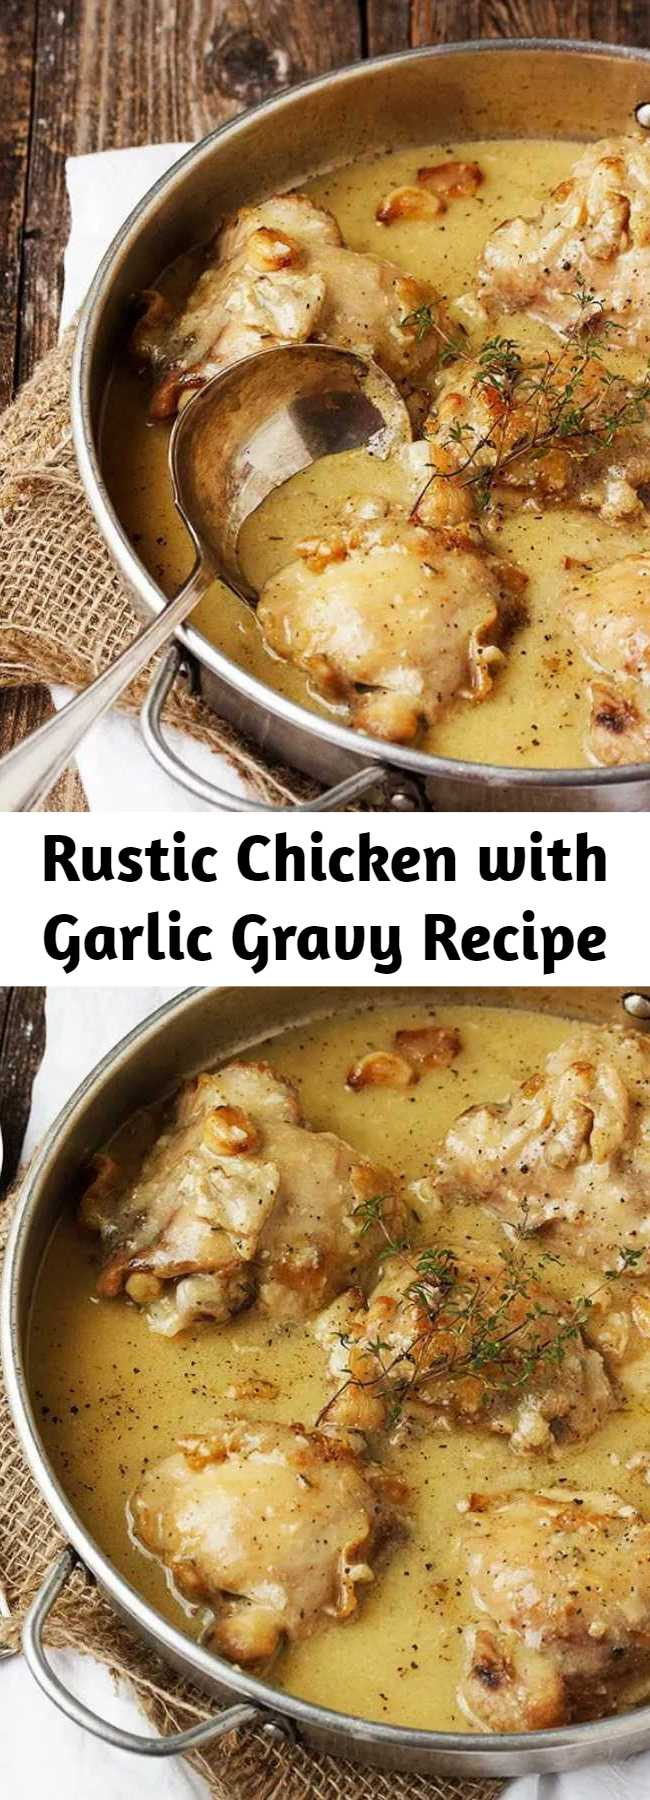 Rustic Chicken with Garlic Gravy Recipe - A delicious one-pan meal that is delicious served with mashed potatoes, rice or pasta, to make the most of the delicious gravy. To save yourself the chore of separating and peeling all that garlic, look for pre-separated/peeled garlic cloves in the produce section of your grocery store. #chicken #onepan #garlic